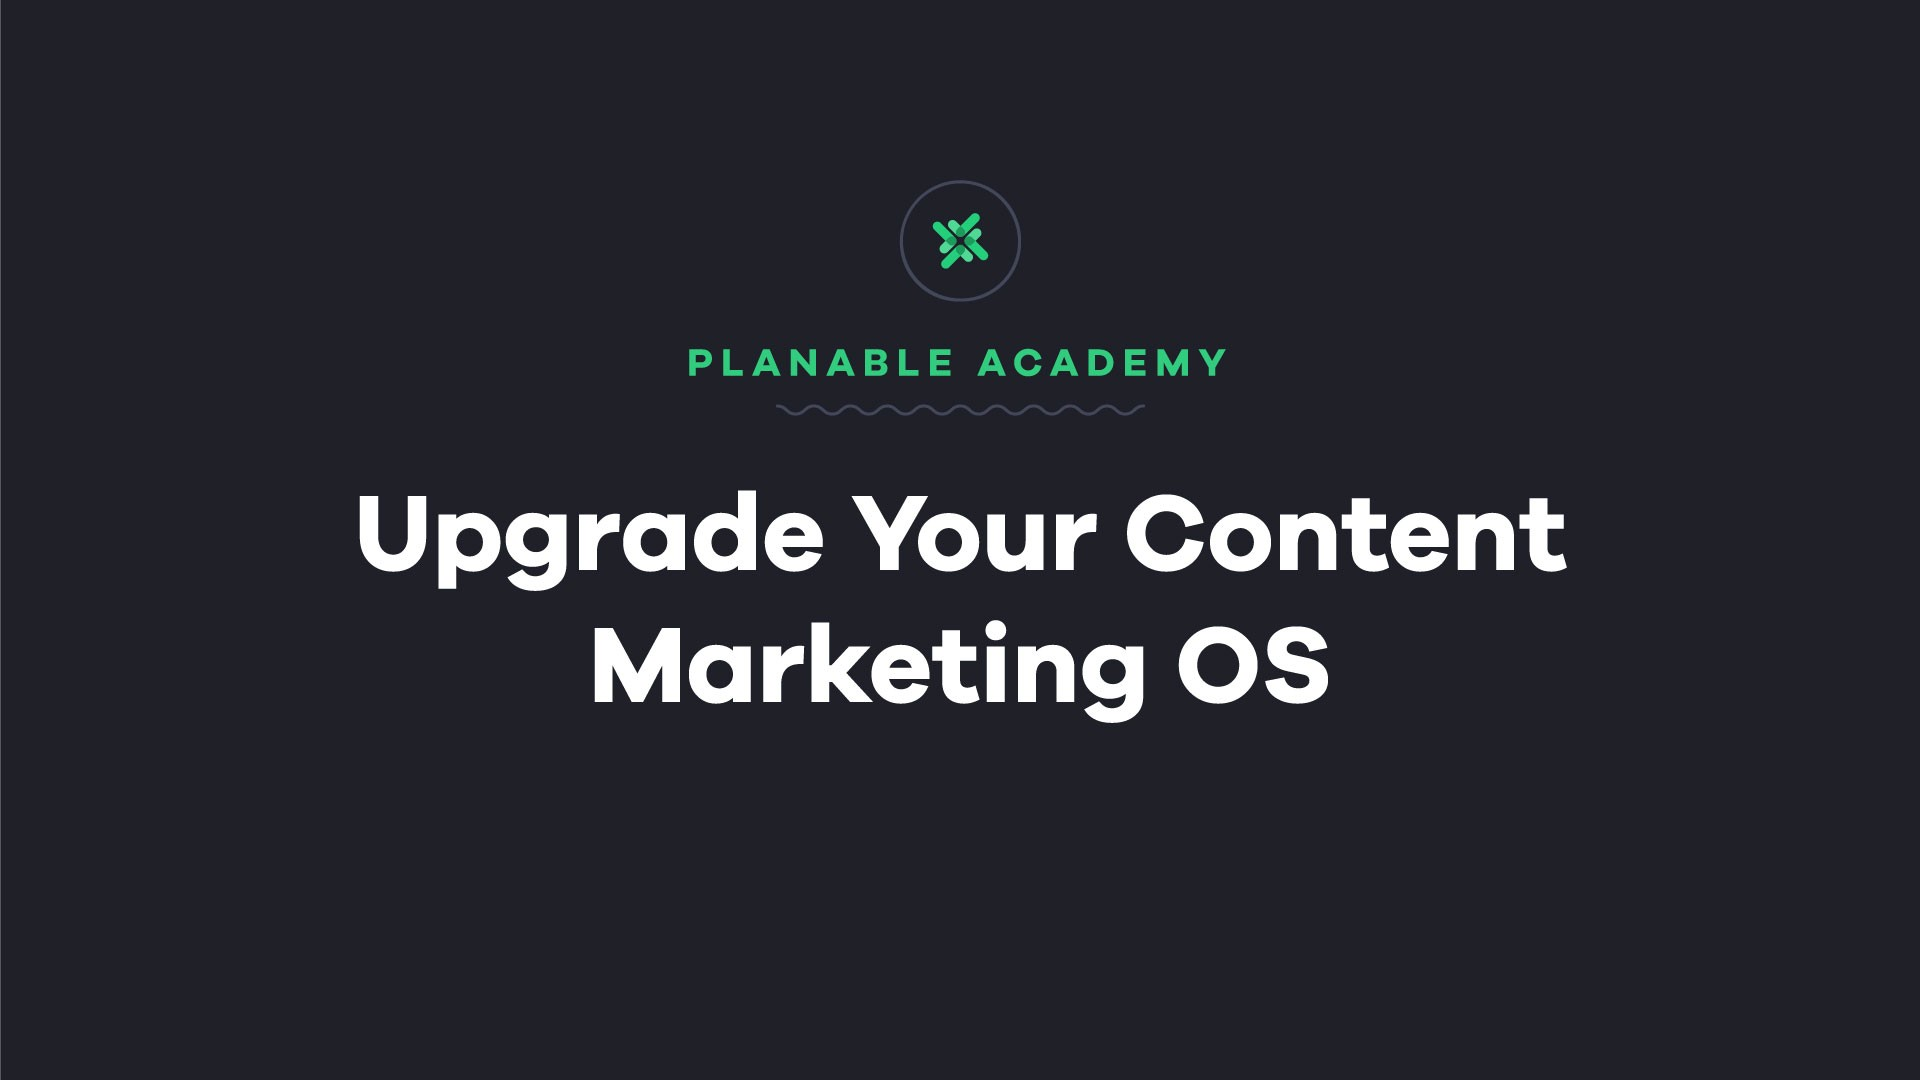 upgrade you content marketing os - planable academy